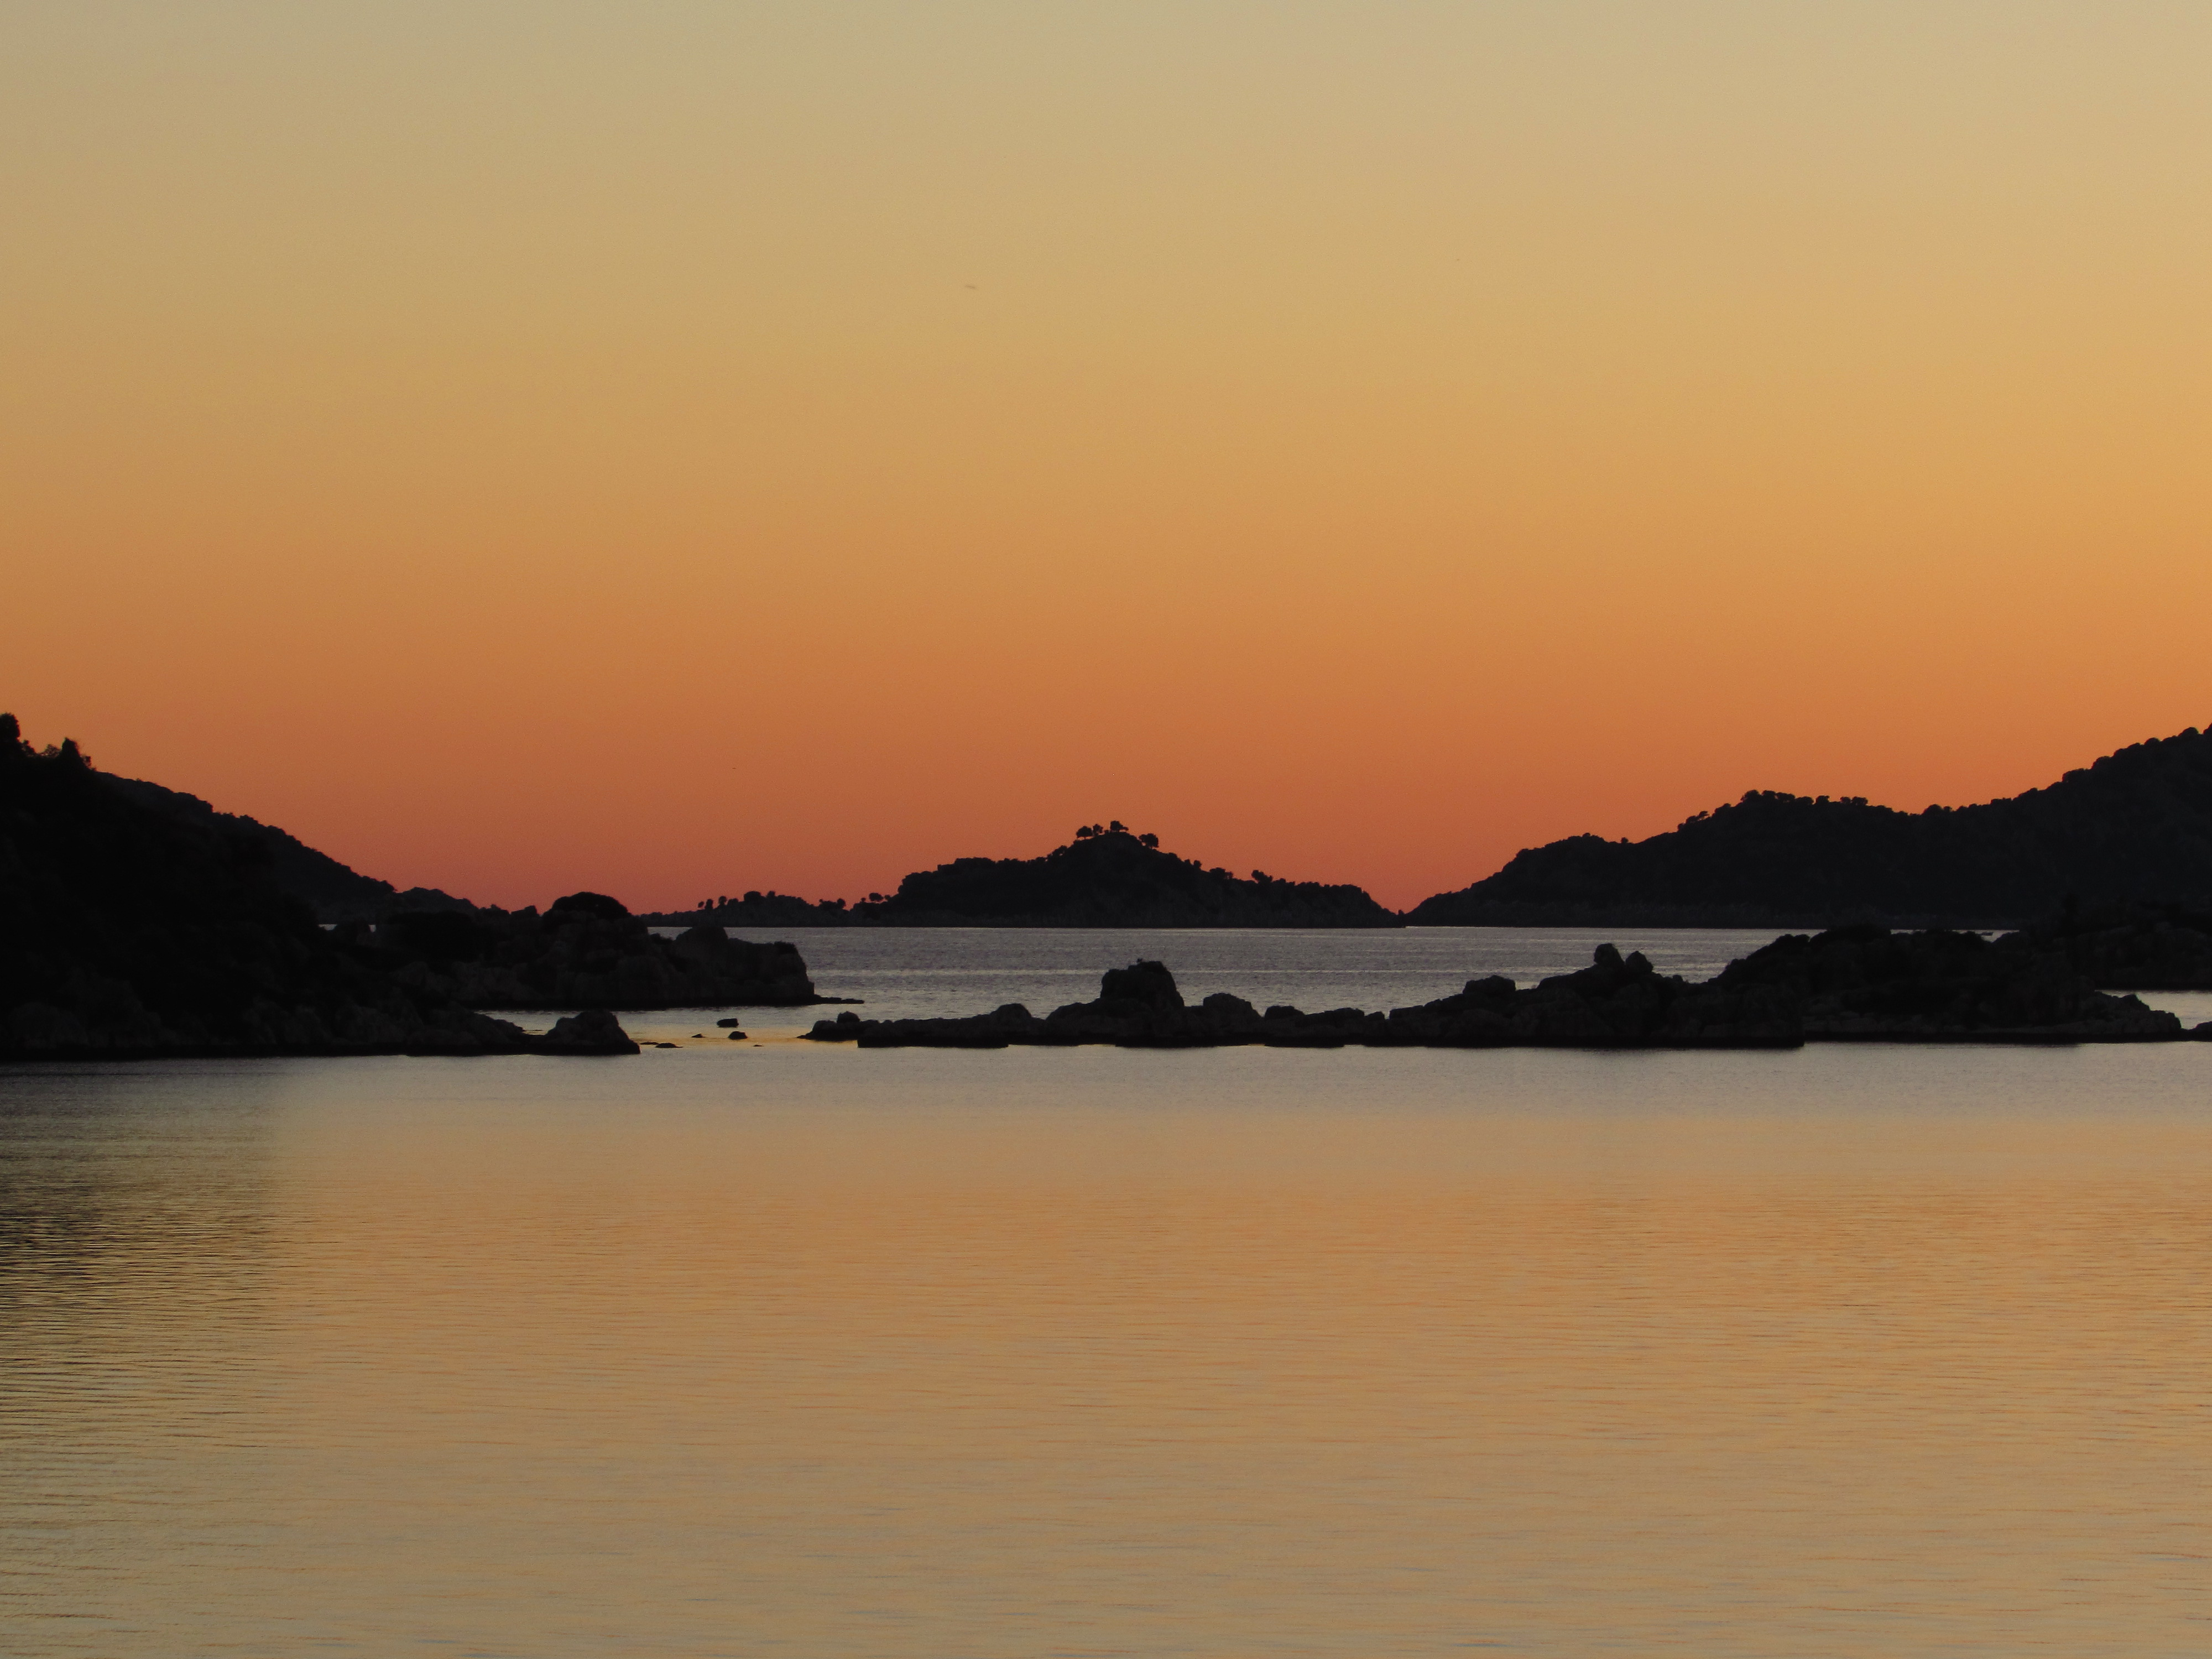 Kekova, at the end of Christmas Day